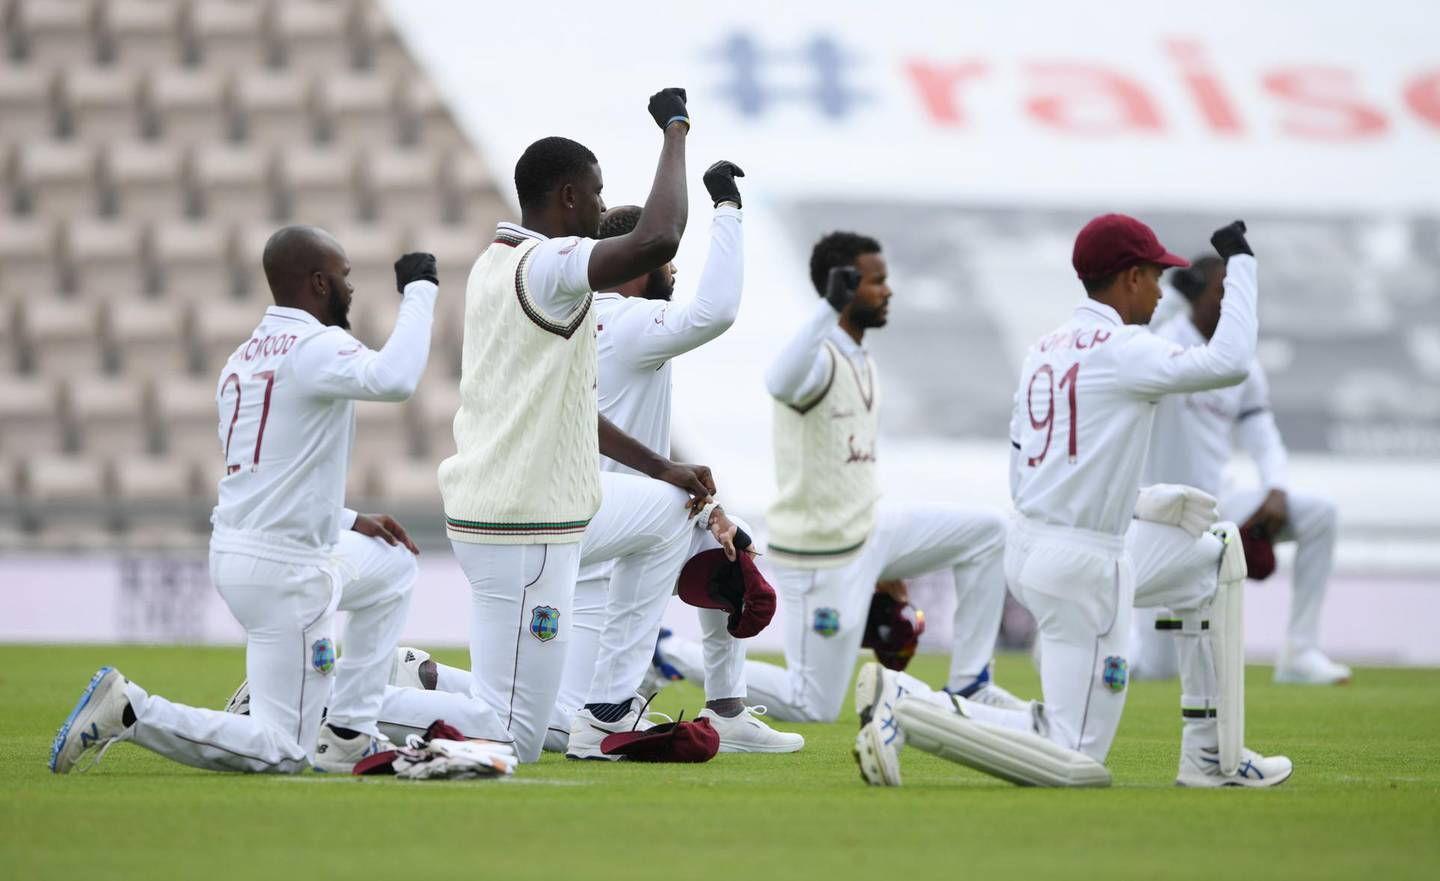 Cricket - First Test - England v West Indies - Rose Bowl Cricket Stadium, Southampton, Britain - July 8, 2020   West Indies players kneel in support of the Black Lives Matter campaign before the match , as play resumes behind closed doors following the outbreak of the coronavirus disease (COVID-19)   Mike Hewitt/Pool via REUTERS